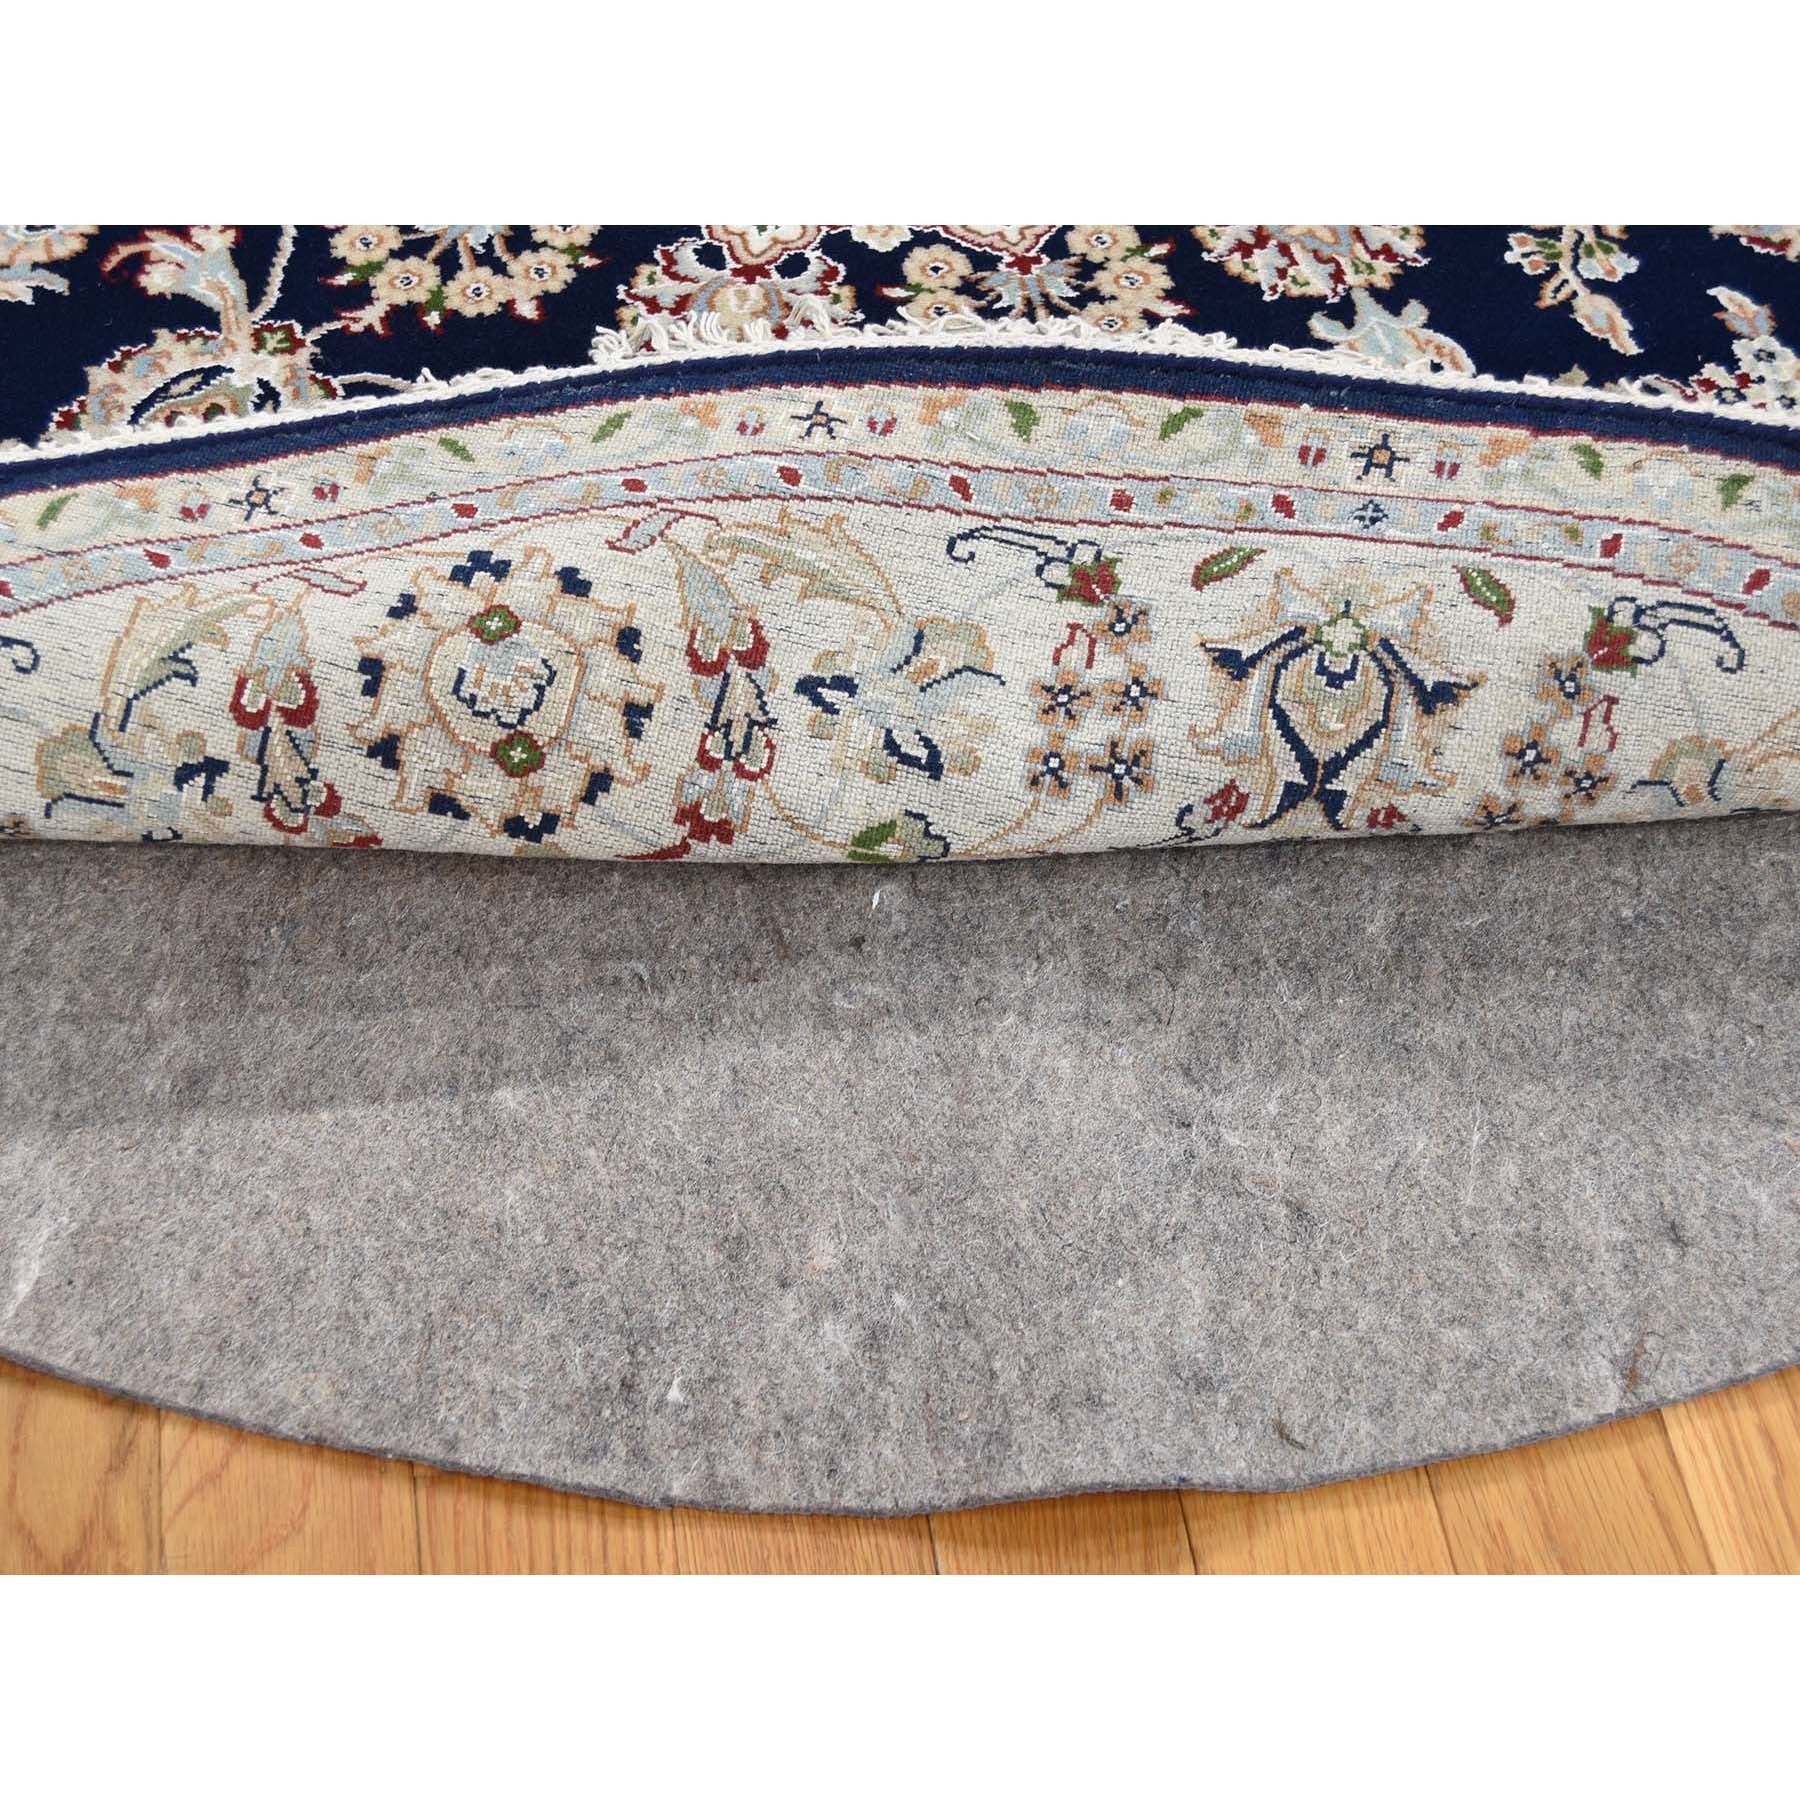 7-x7- Navy Blue Round Nain Wool And Silk 250 KPSI Hand Knotted Oriental Rug